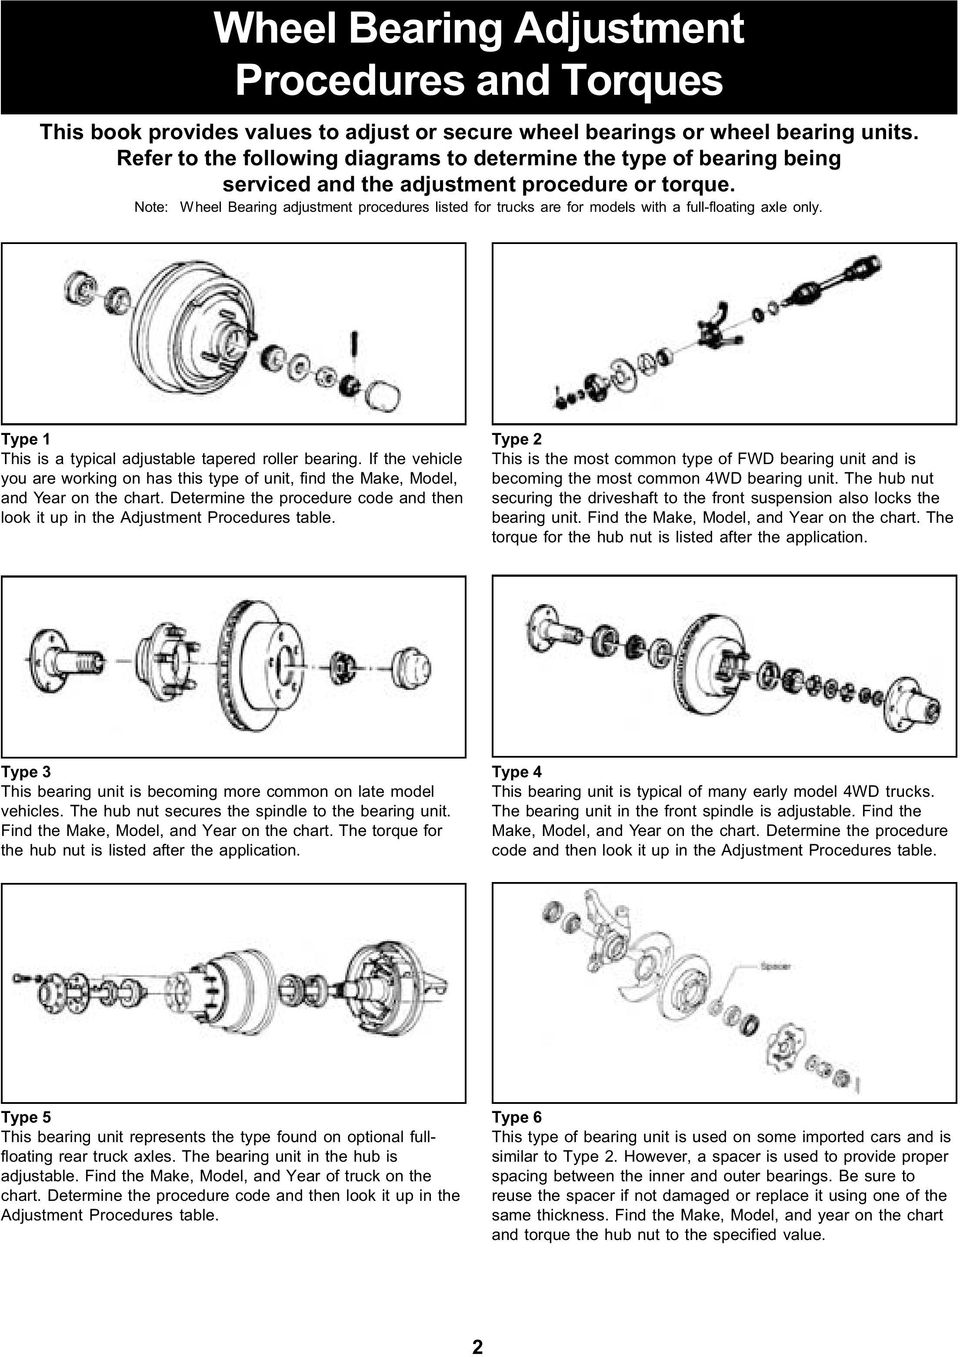 hight resolution of note wheel bearing adjustment procedures listed for trucks are for models with a full